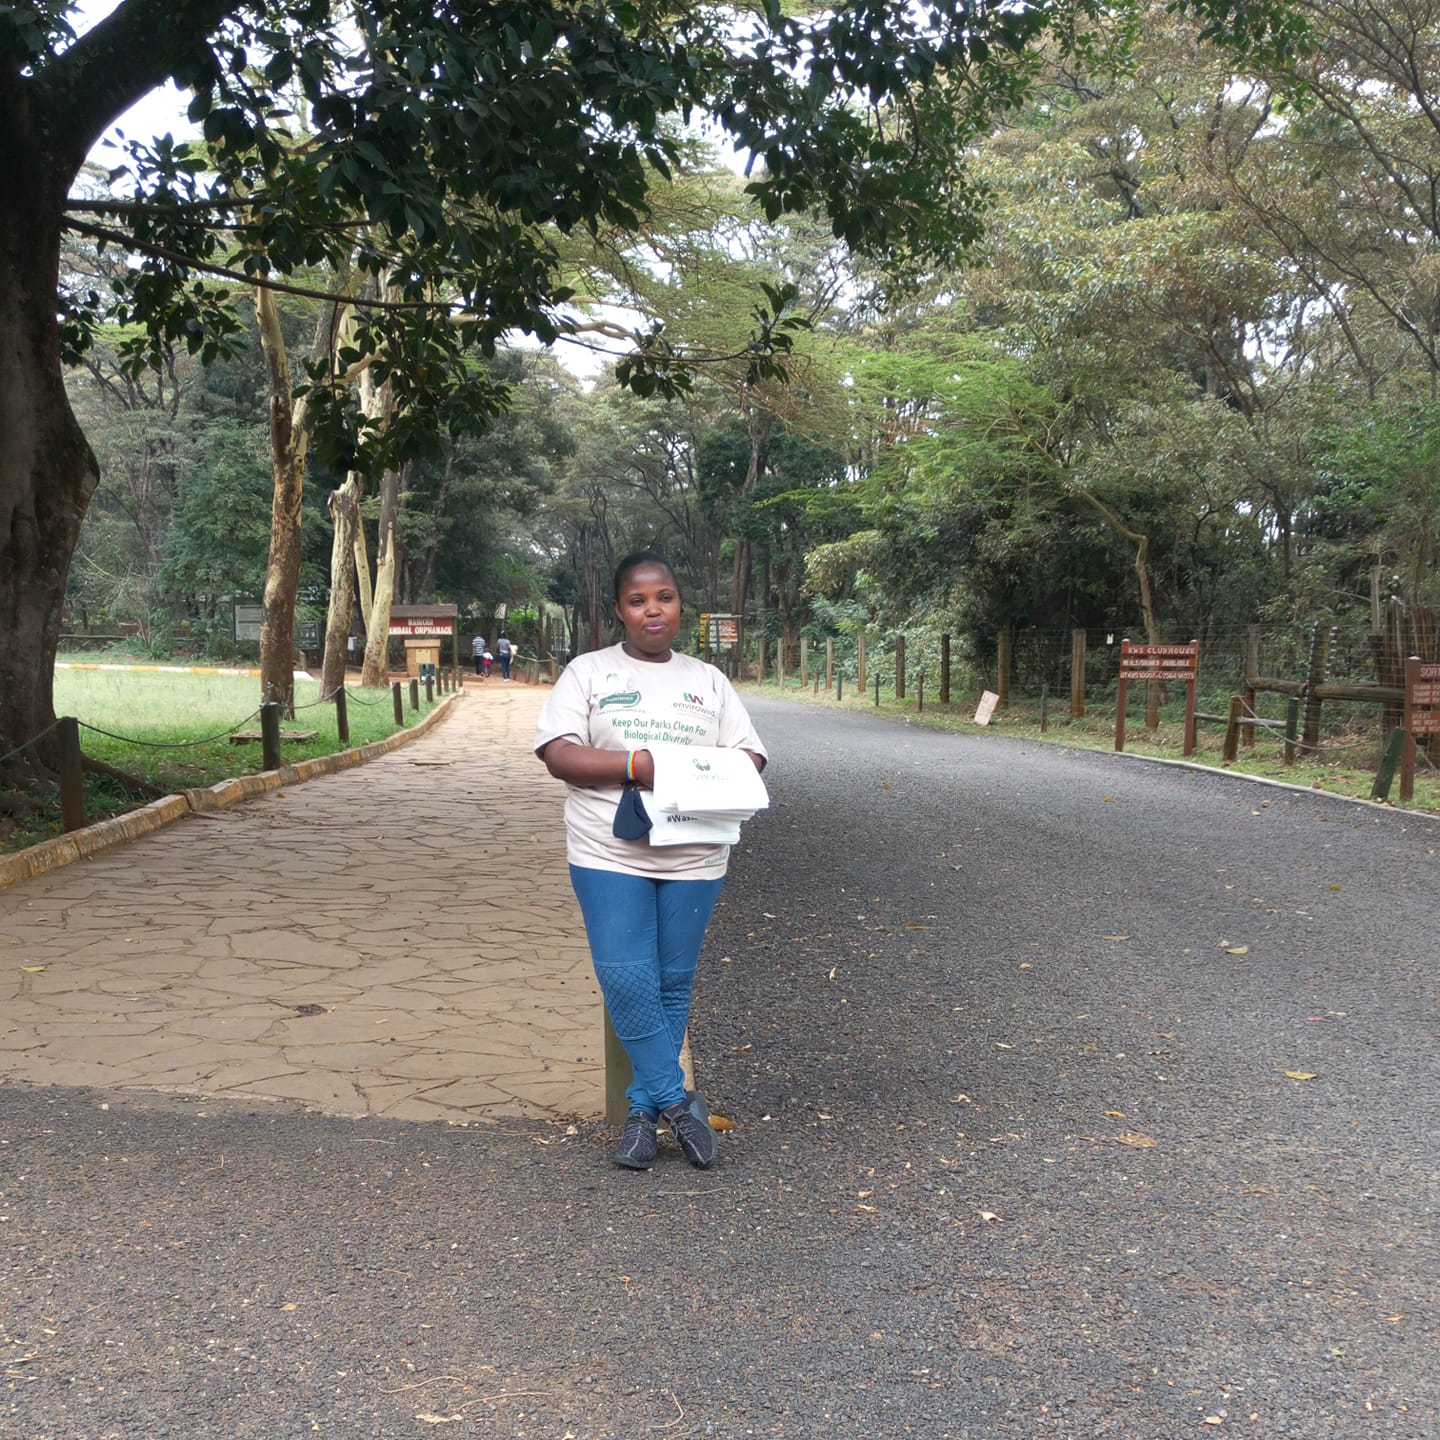 Distributing litter bags to Nairobi National Park visitors to promote the 'Waste Free Parks' initiative